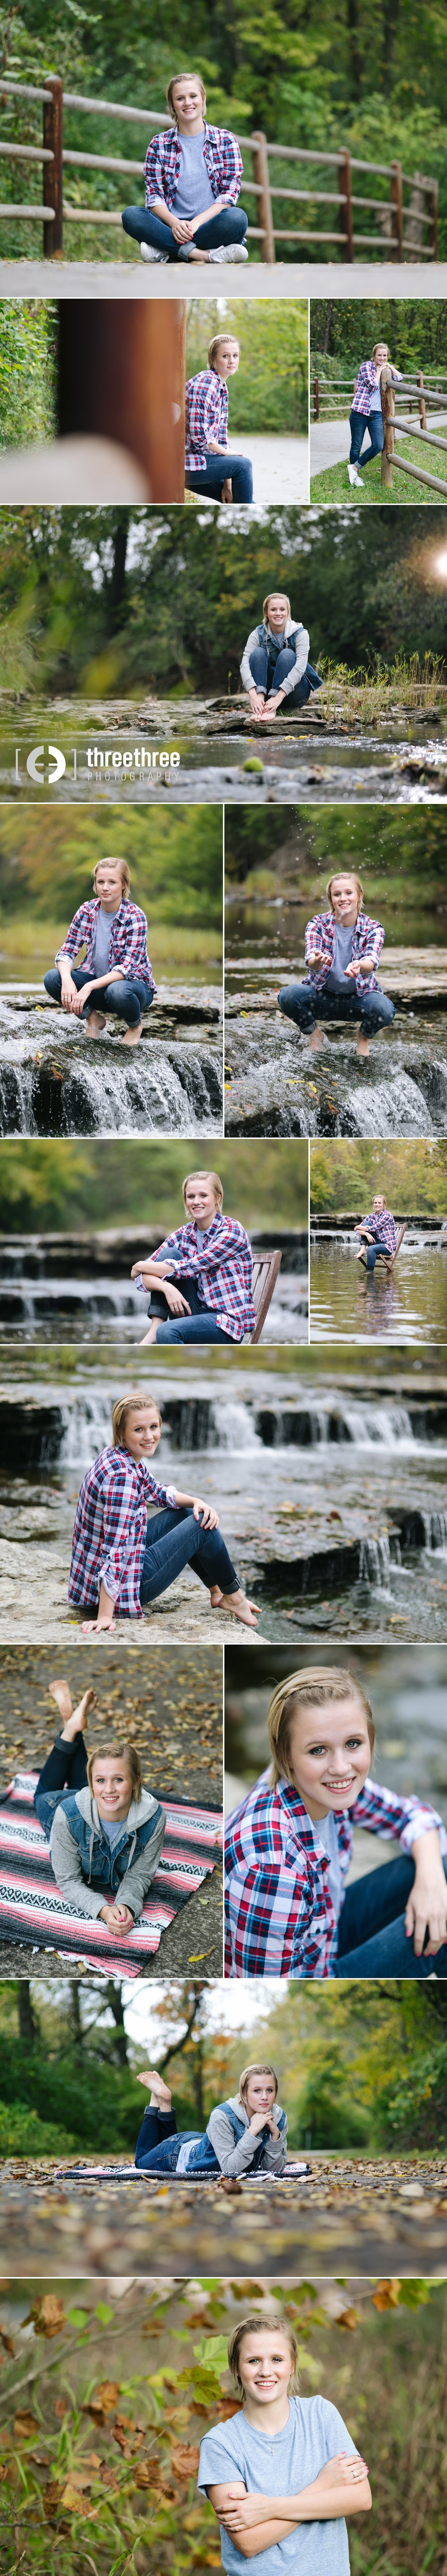 Liz_Kansas City Senior Pictures 1.jpg